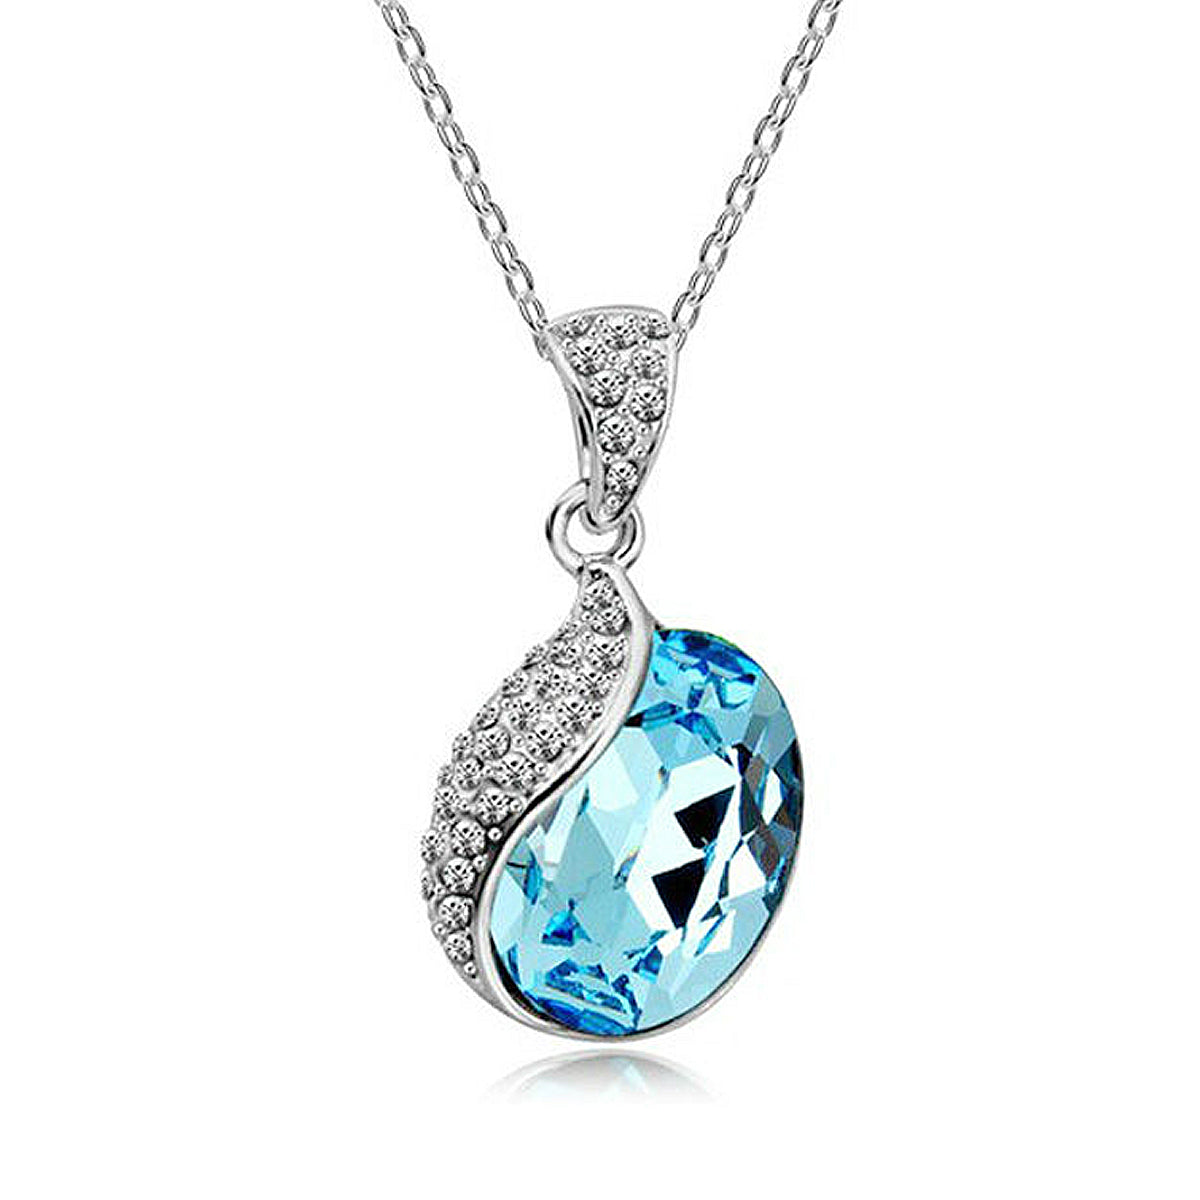 Wrapables Silver Plated Swarovski Elements Crystal Raindrop Necklace